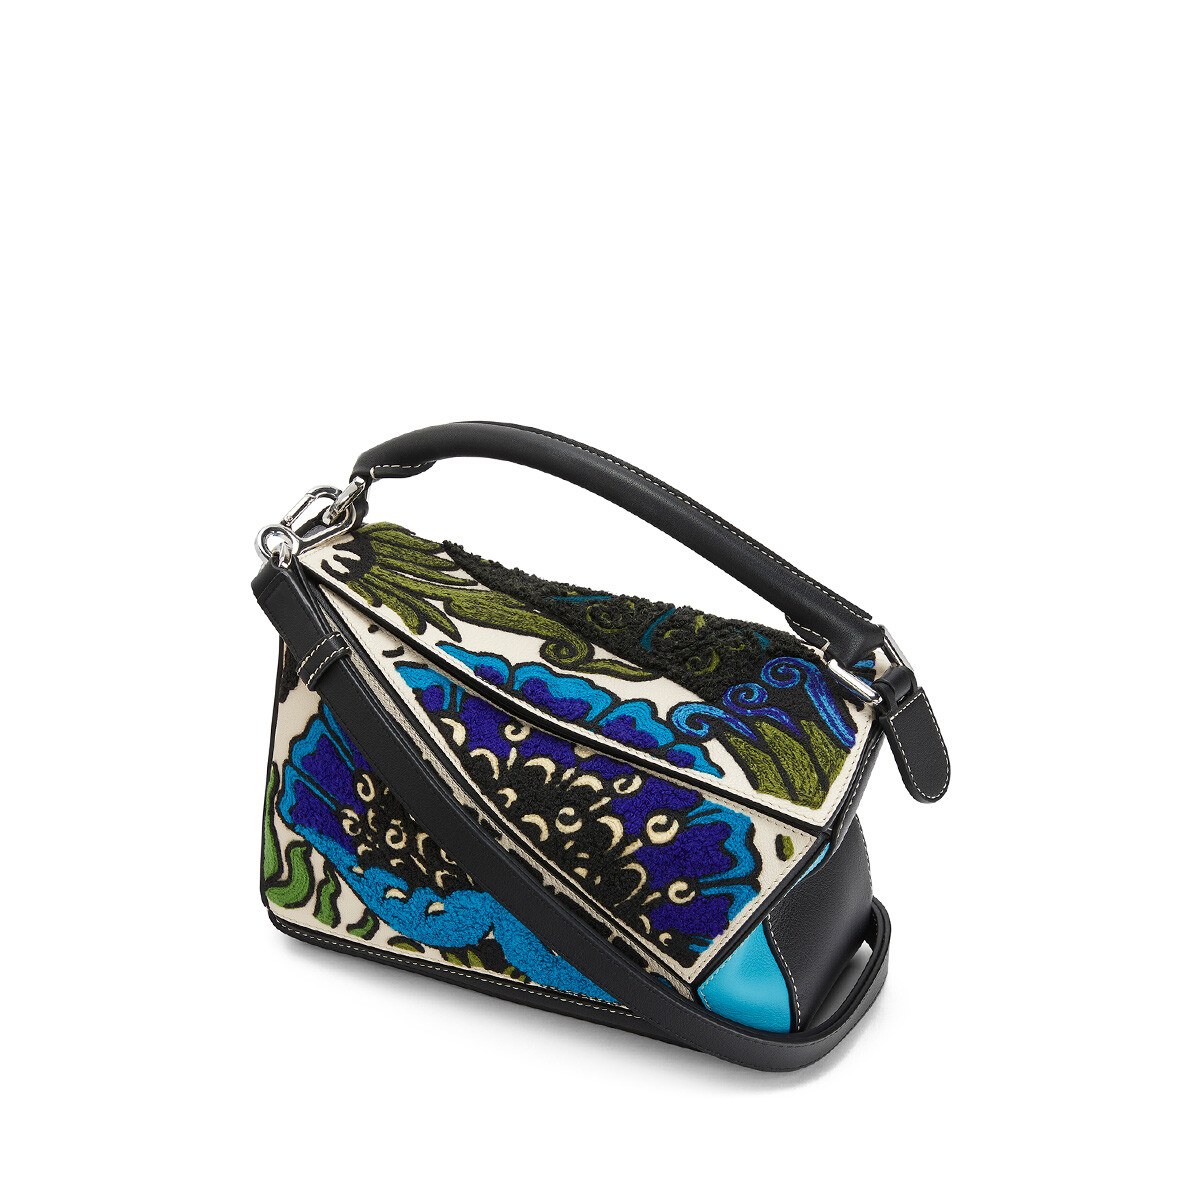 LOEWE Puzzle Floral Small Bag Peacock Blue front